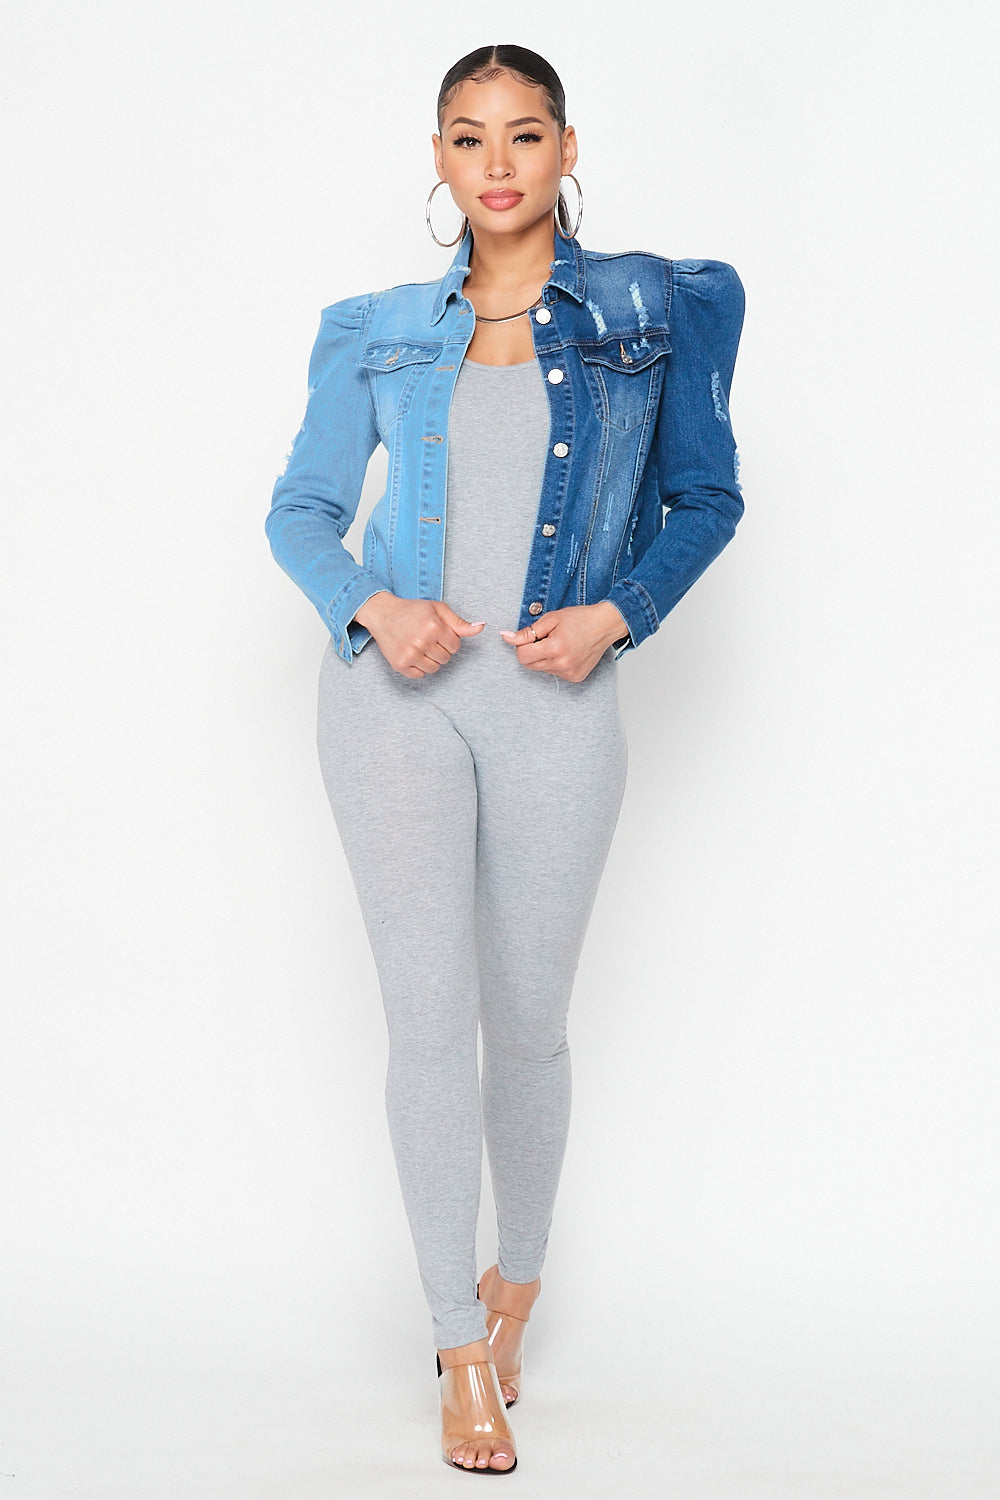 Half Half Two Tone Puff Sleeve Denim Jacket - Fashion House USA